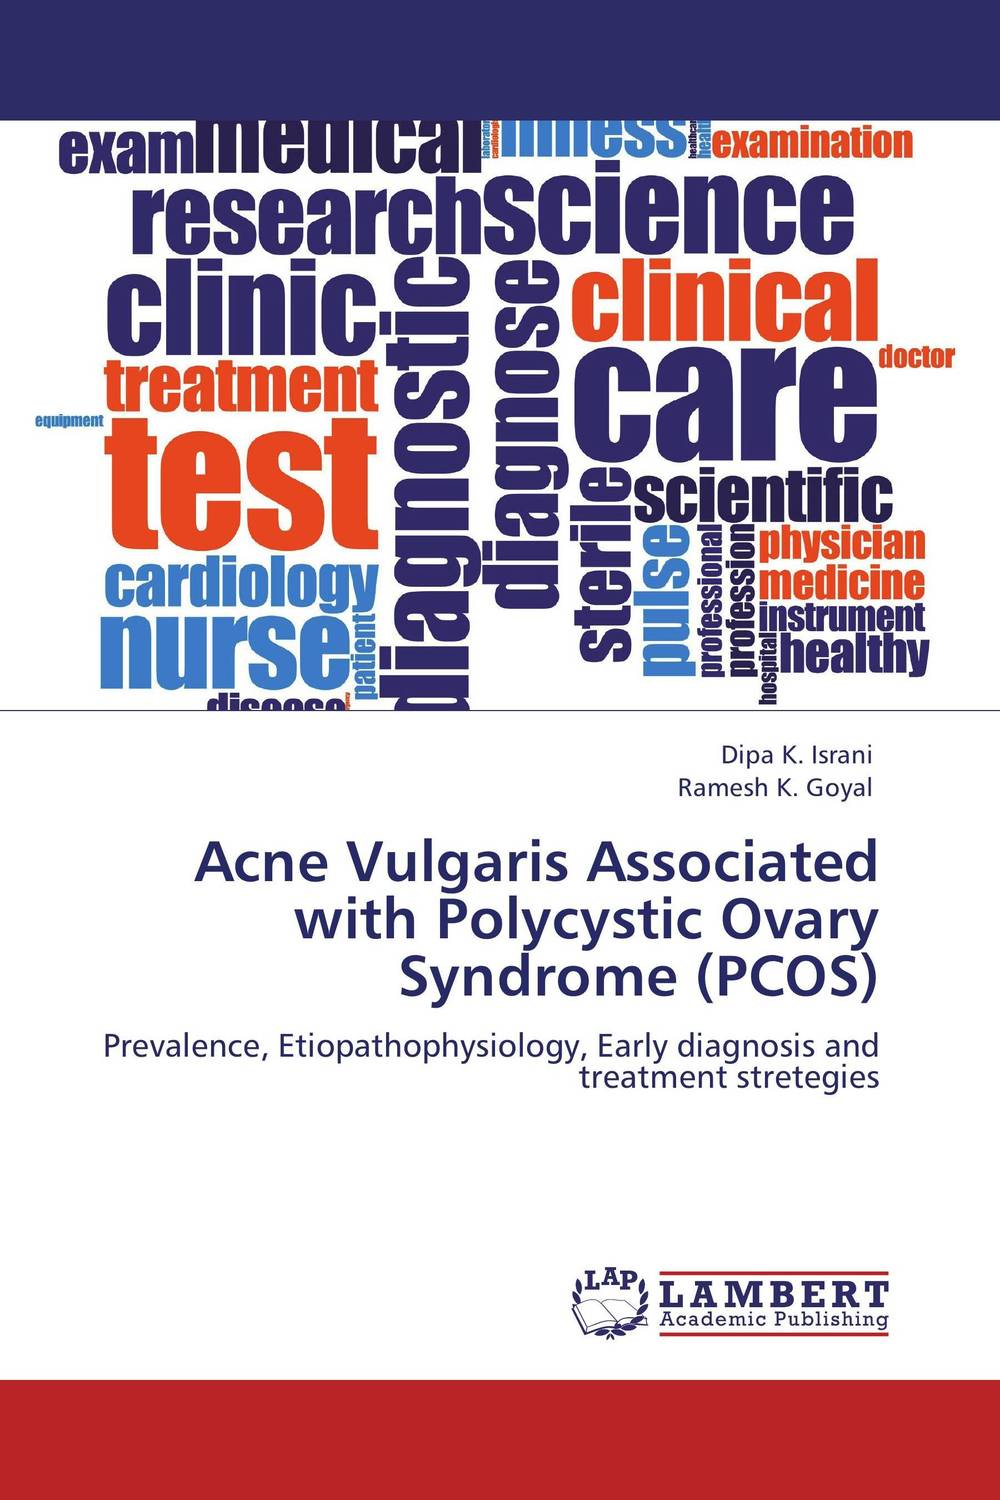 Acne Vulgaris Associated with Polycystic Ovary Syndrome (PCOS) factors associated with bone health in young adults